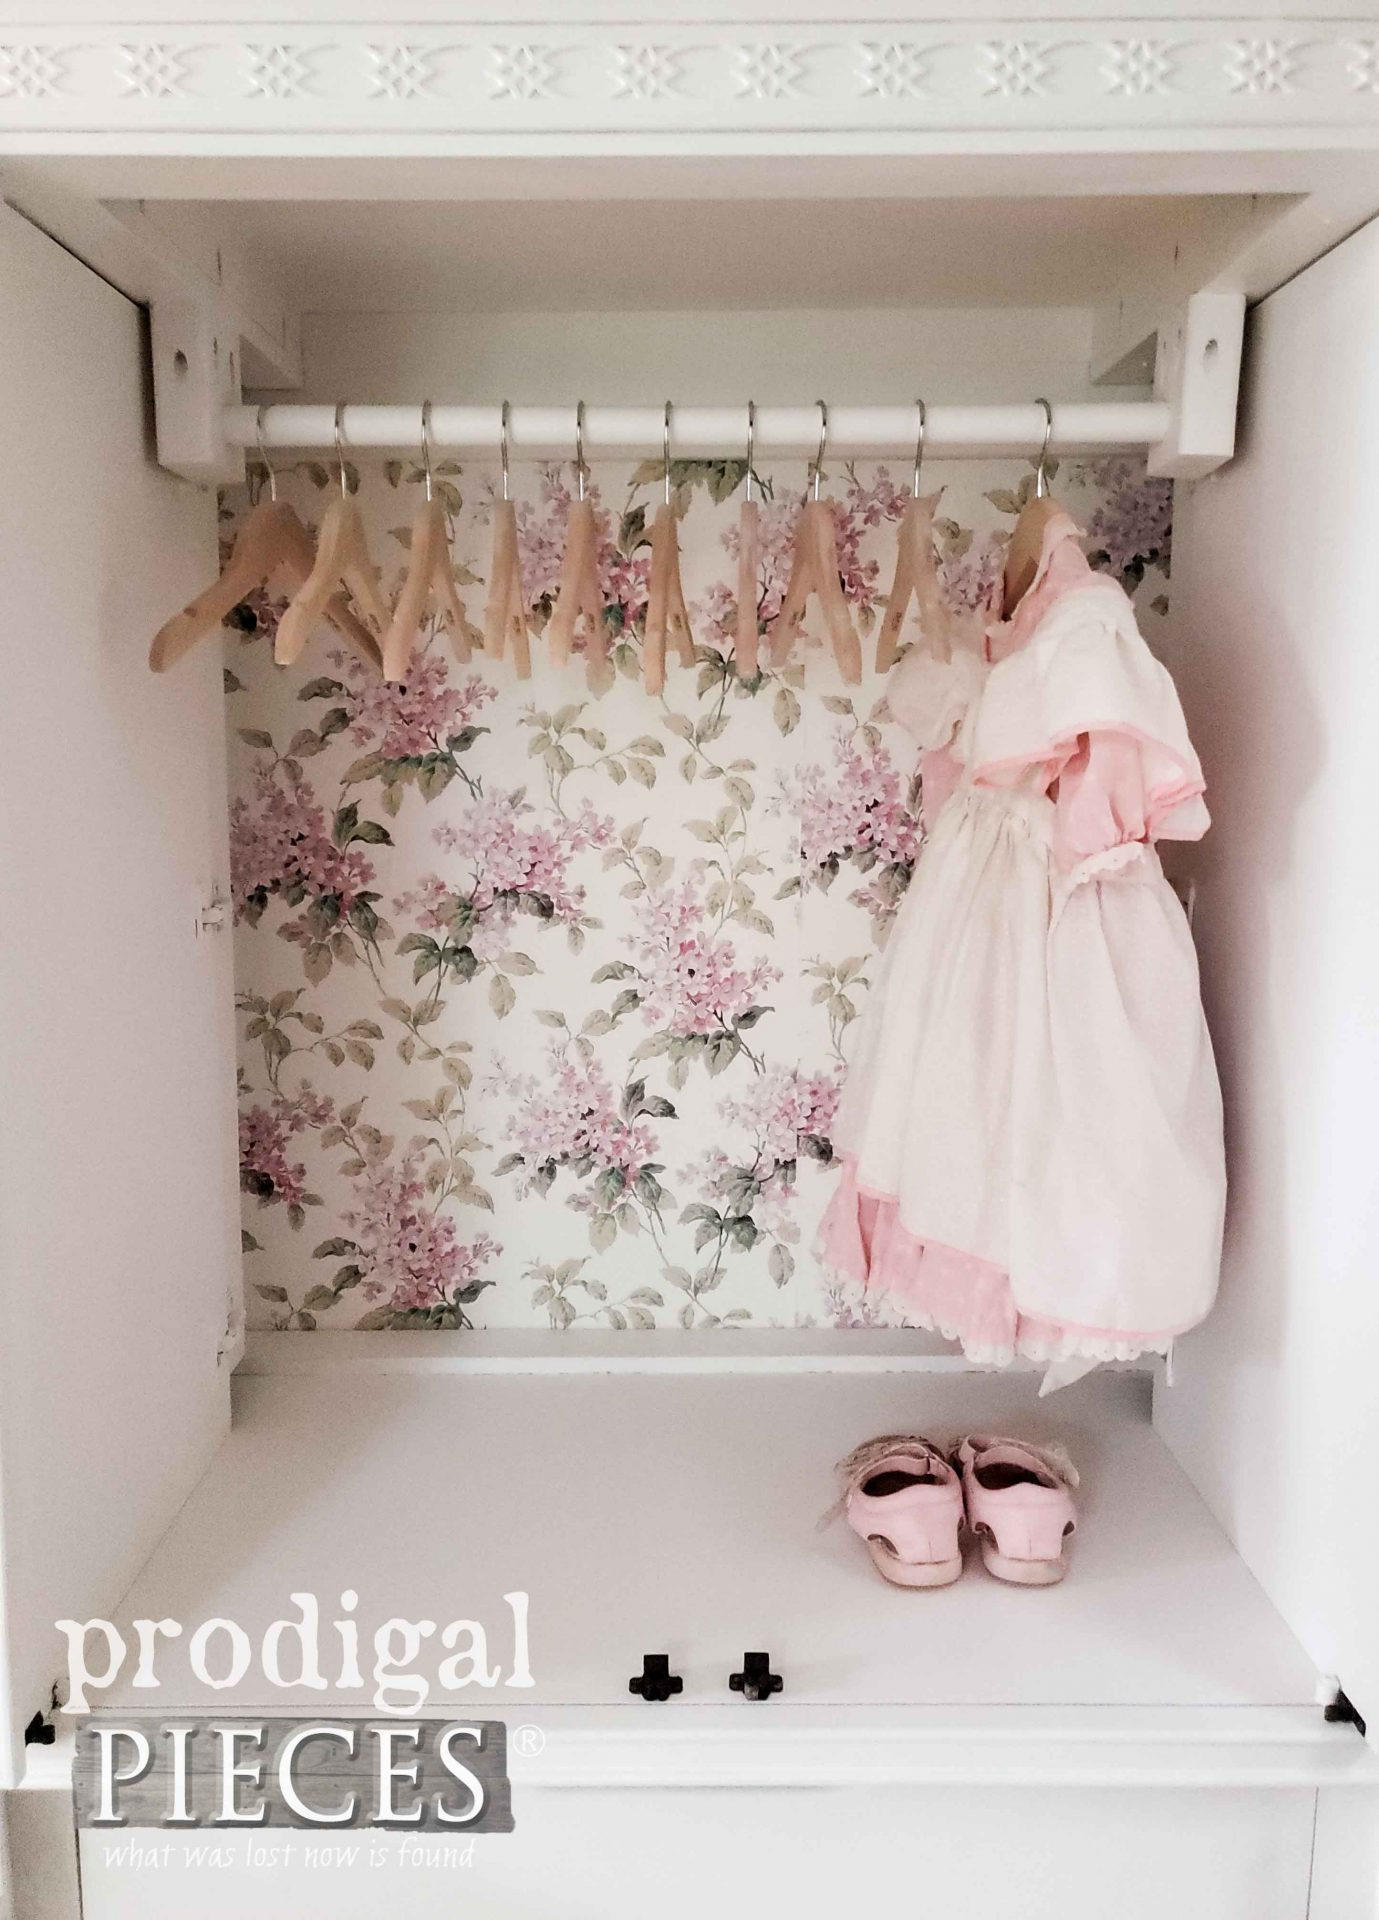 Baby Girl Clothing Wardrobe made from Upcycled Entertainment Center by Larissa of Prodigal Pieces | prodigalpieces.com #prodigalpieces #diy #home #homedecor #baby #nursery #diy #furniture